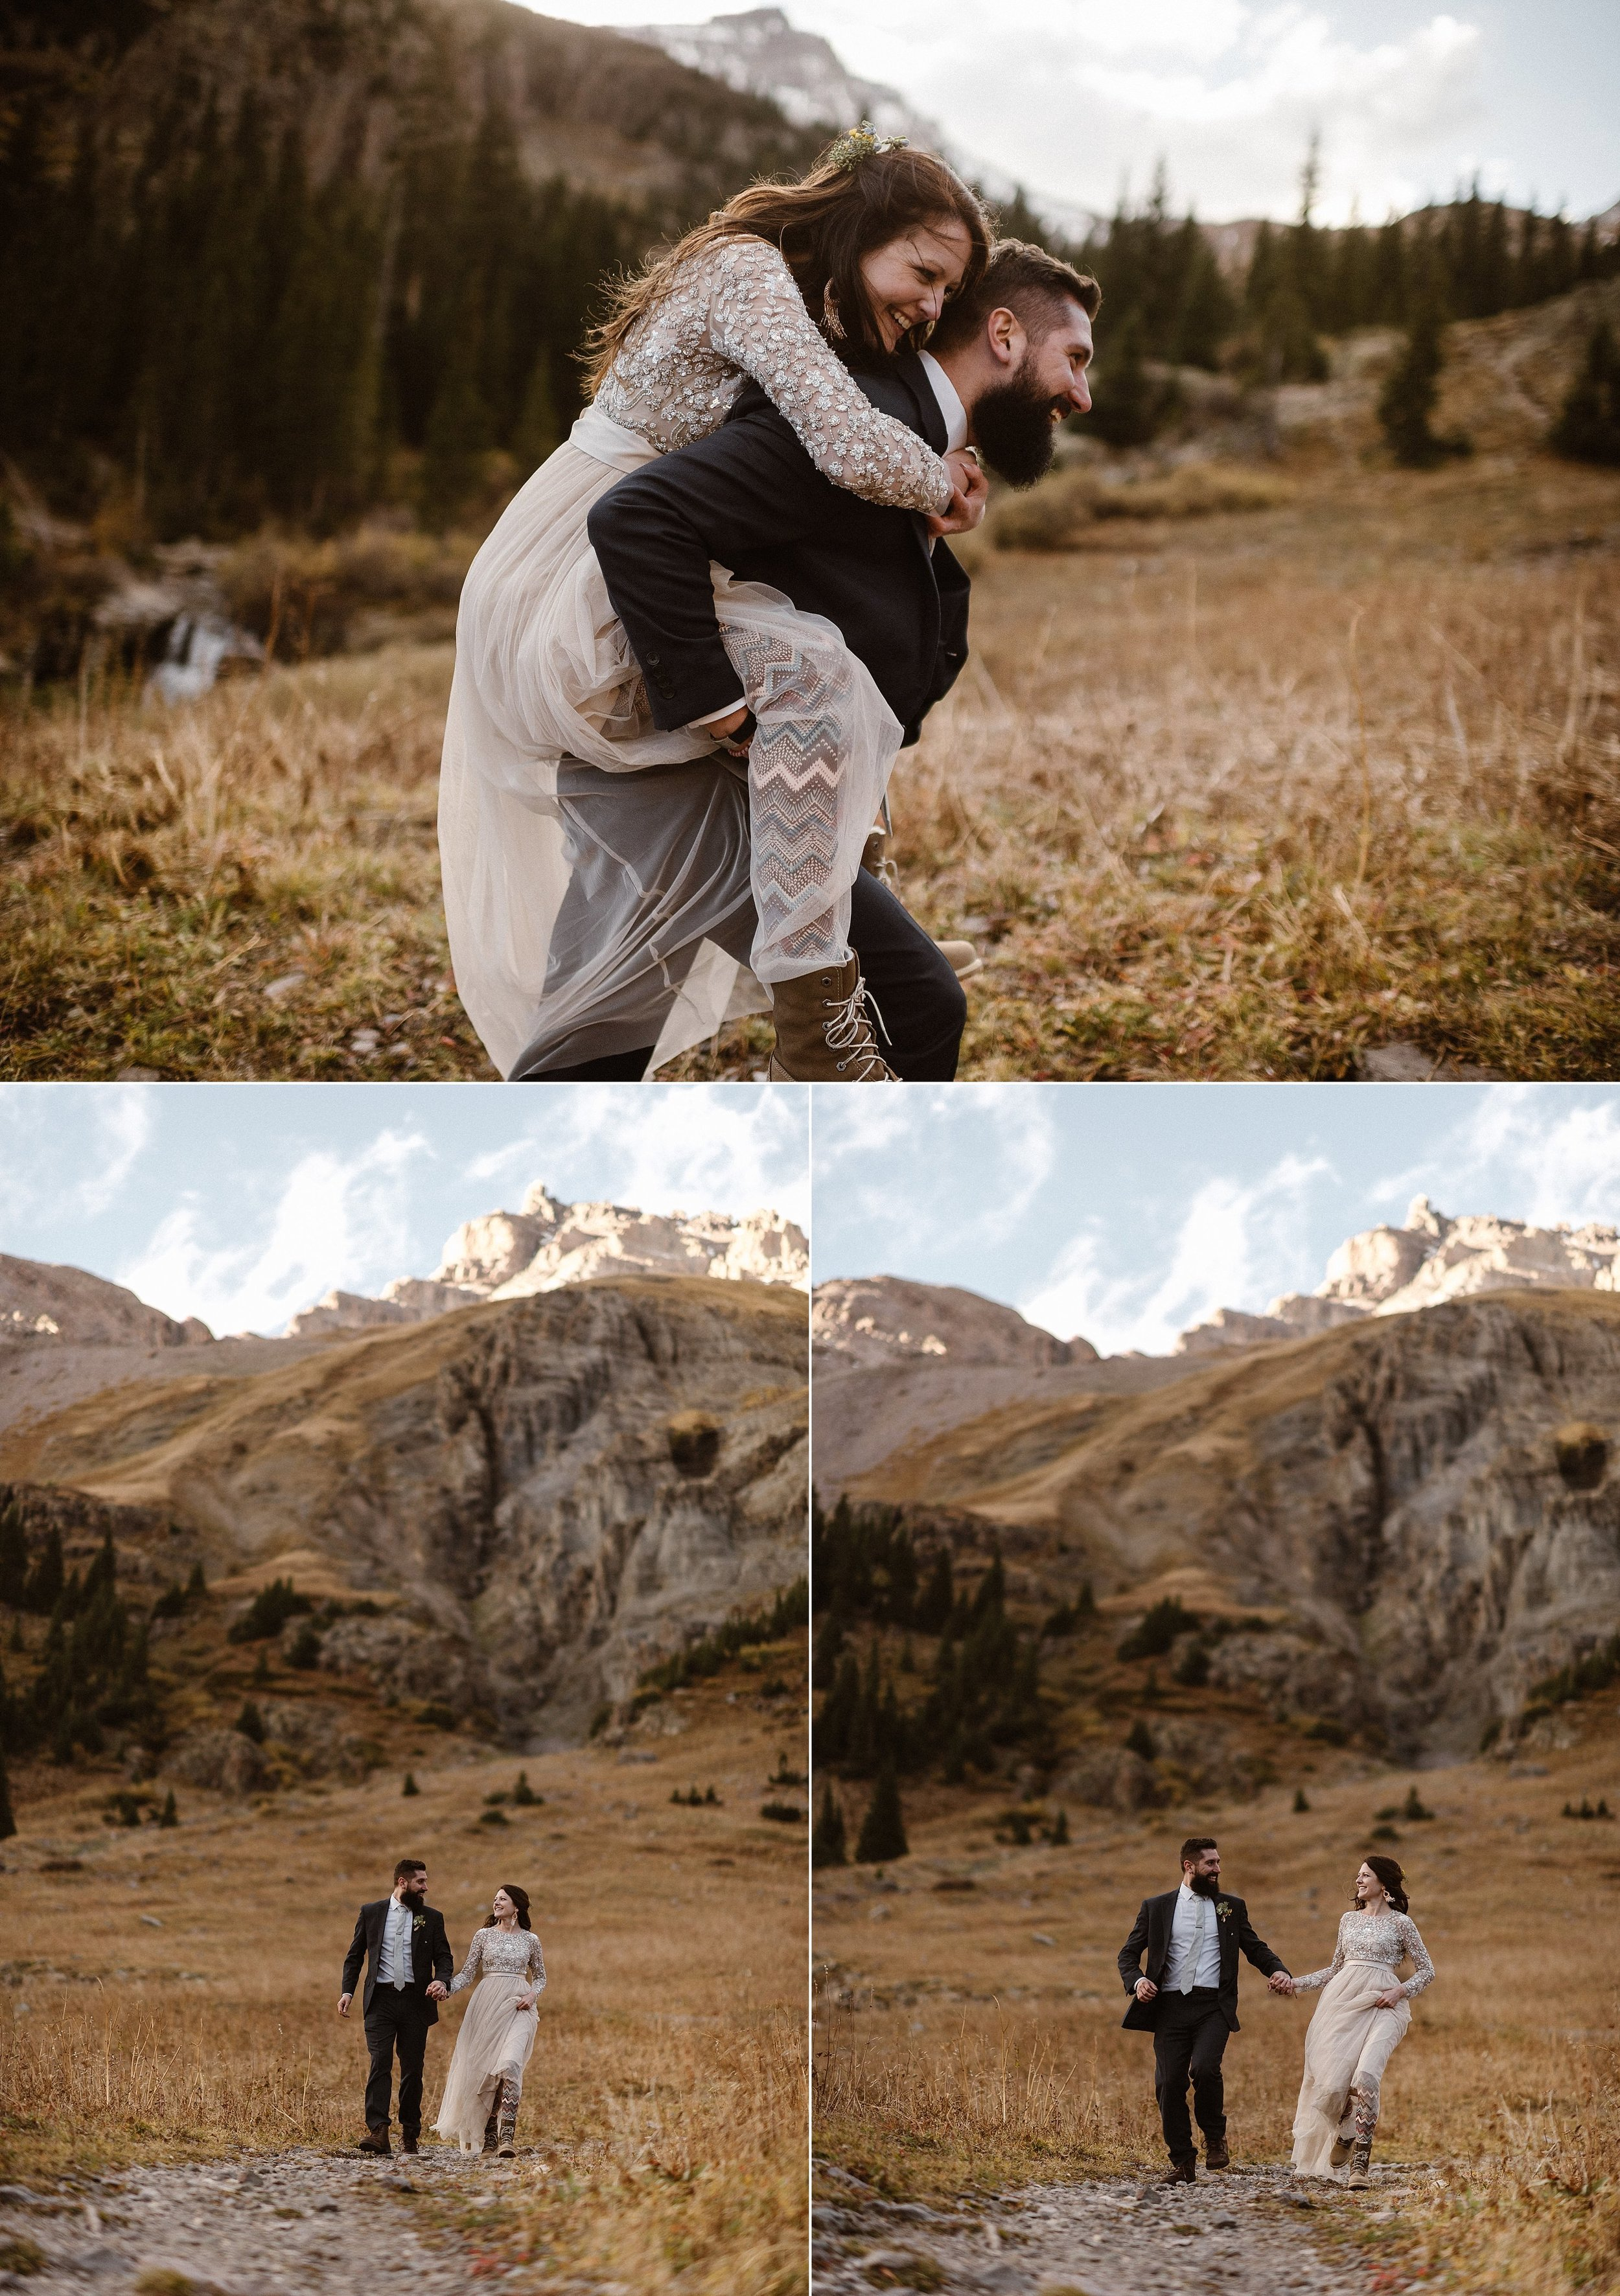 As Jen jumped on Dan's back, her patterned leggings peeked through the tulle of her beige wedding gown. This playful couple threw tradition to the wind and eloped in the mountains near Ouray, Colorado in Yankee Boy Basin with only their intimate traveling wedding photographer Maddie Mae.